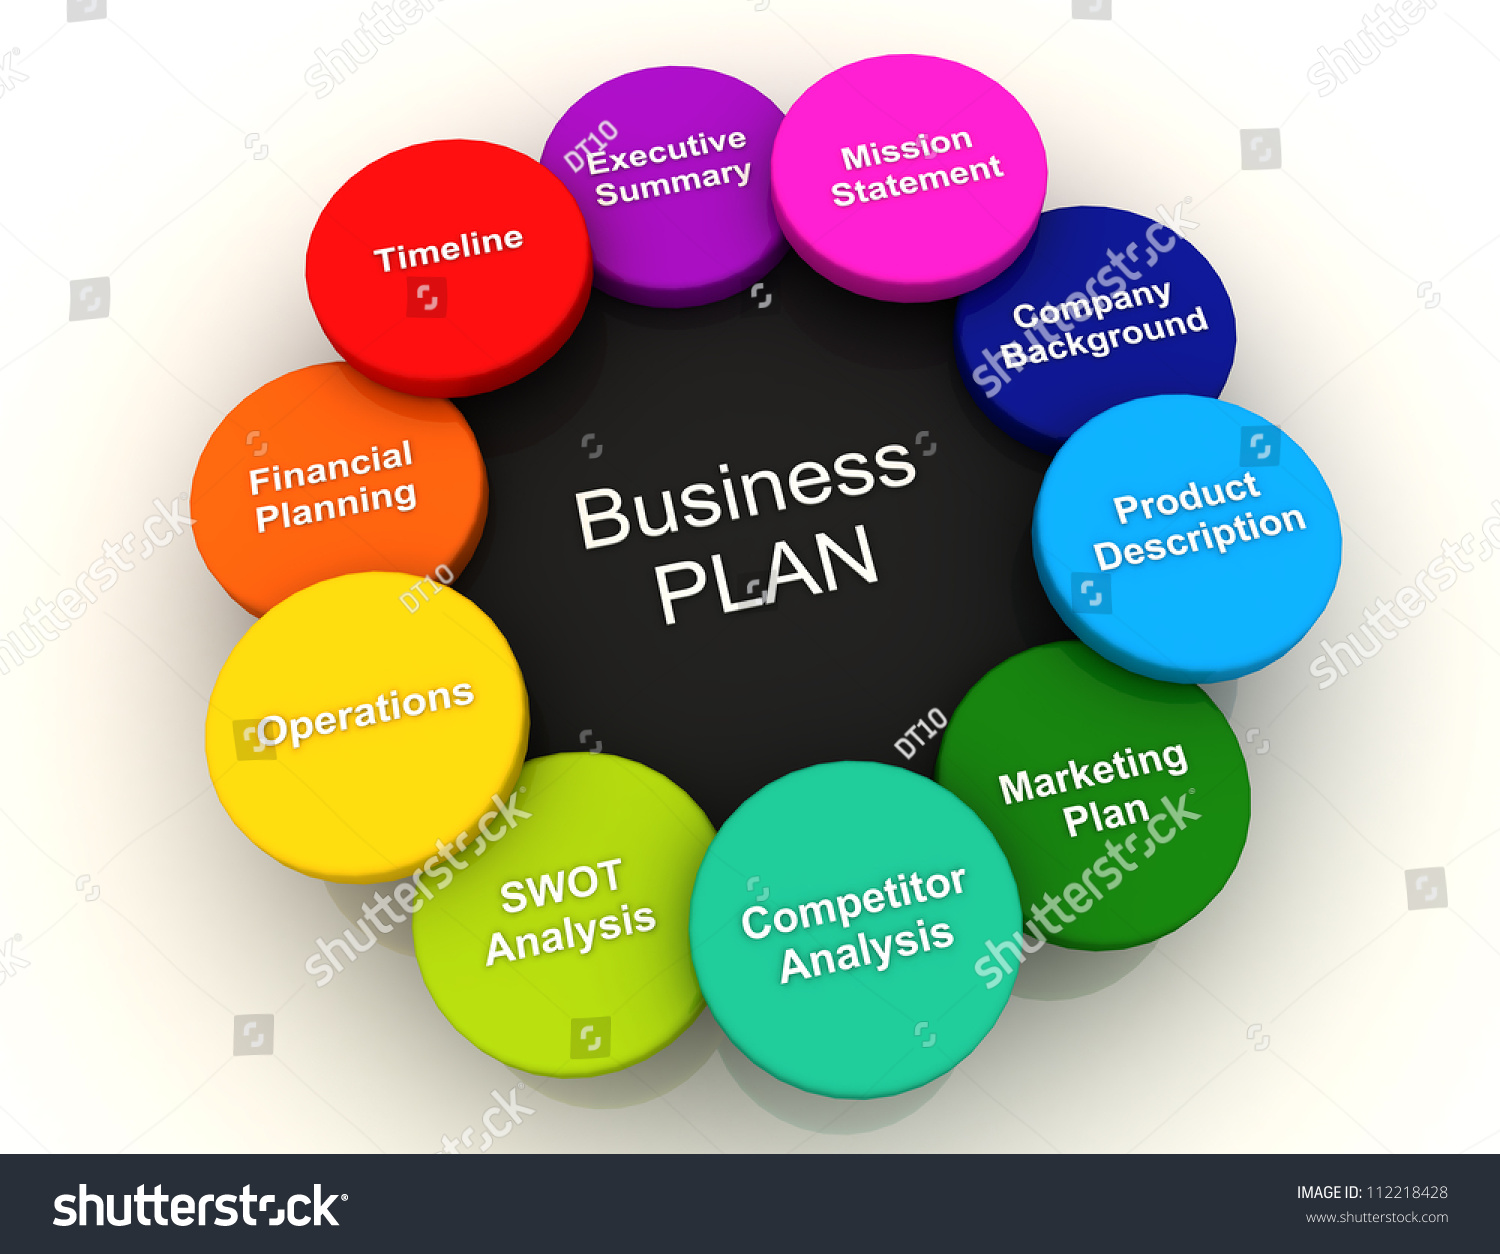 3 d business plan circle color chartのイラスト素材 112218428